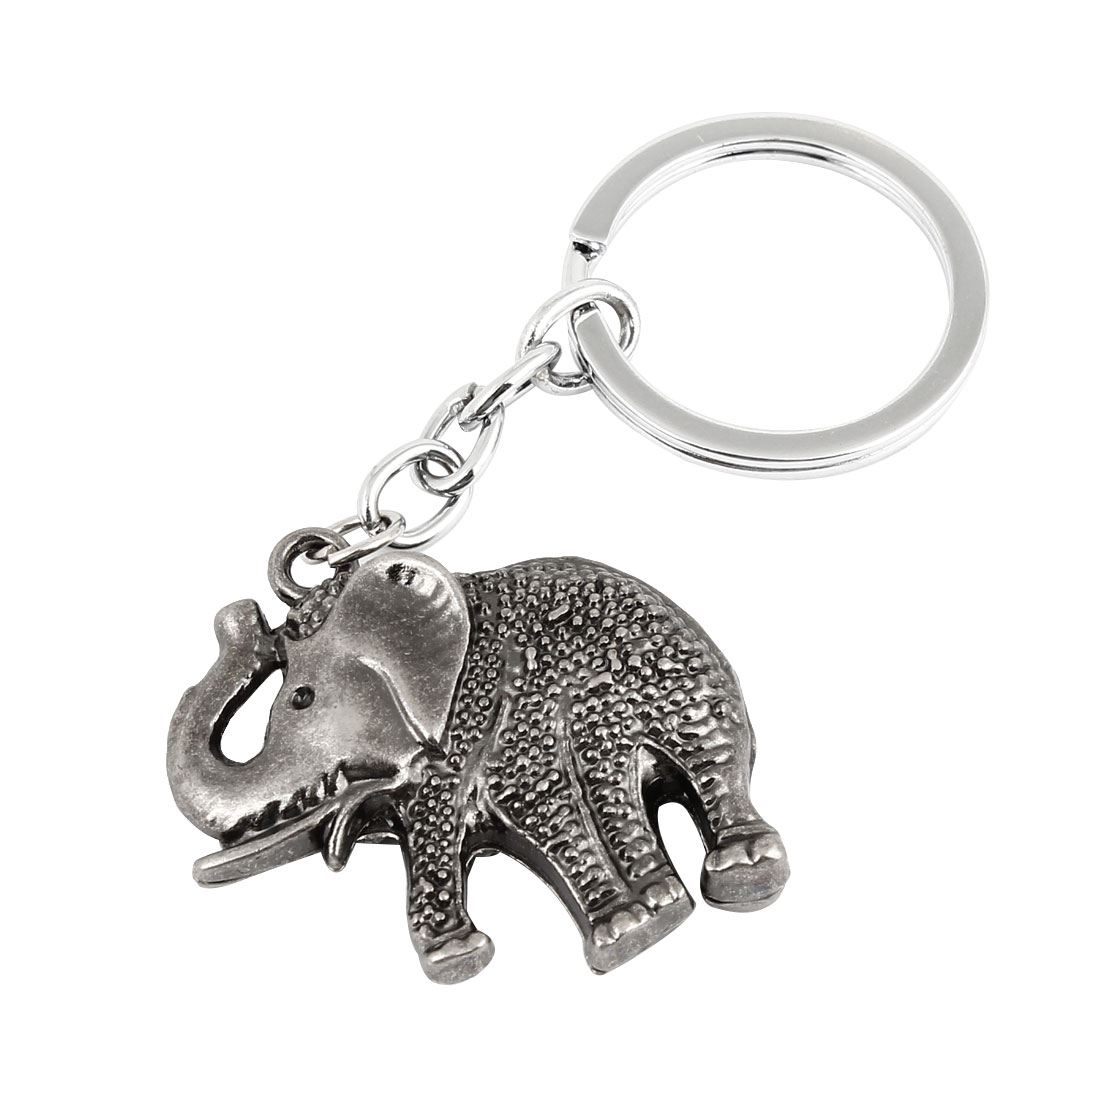 Metal Elephant Shaped Pendant Keychain Keyring Key Holder 9cm Length Gray